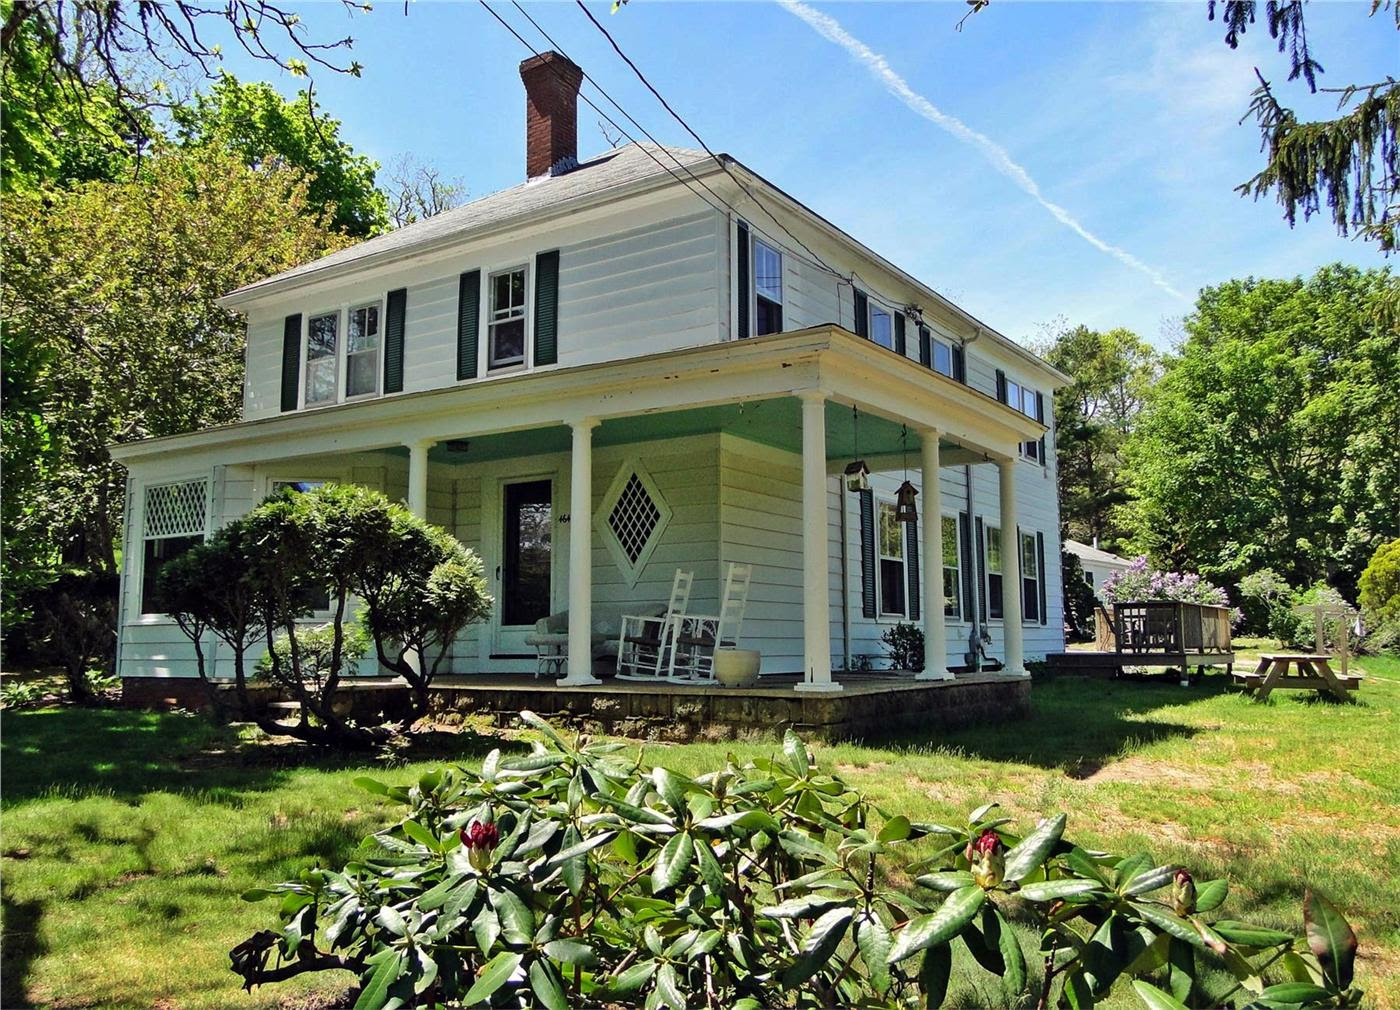 Harwich Vacation Rental home in Cape Cod MA 02645 Across